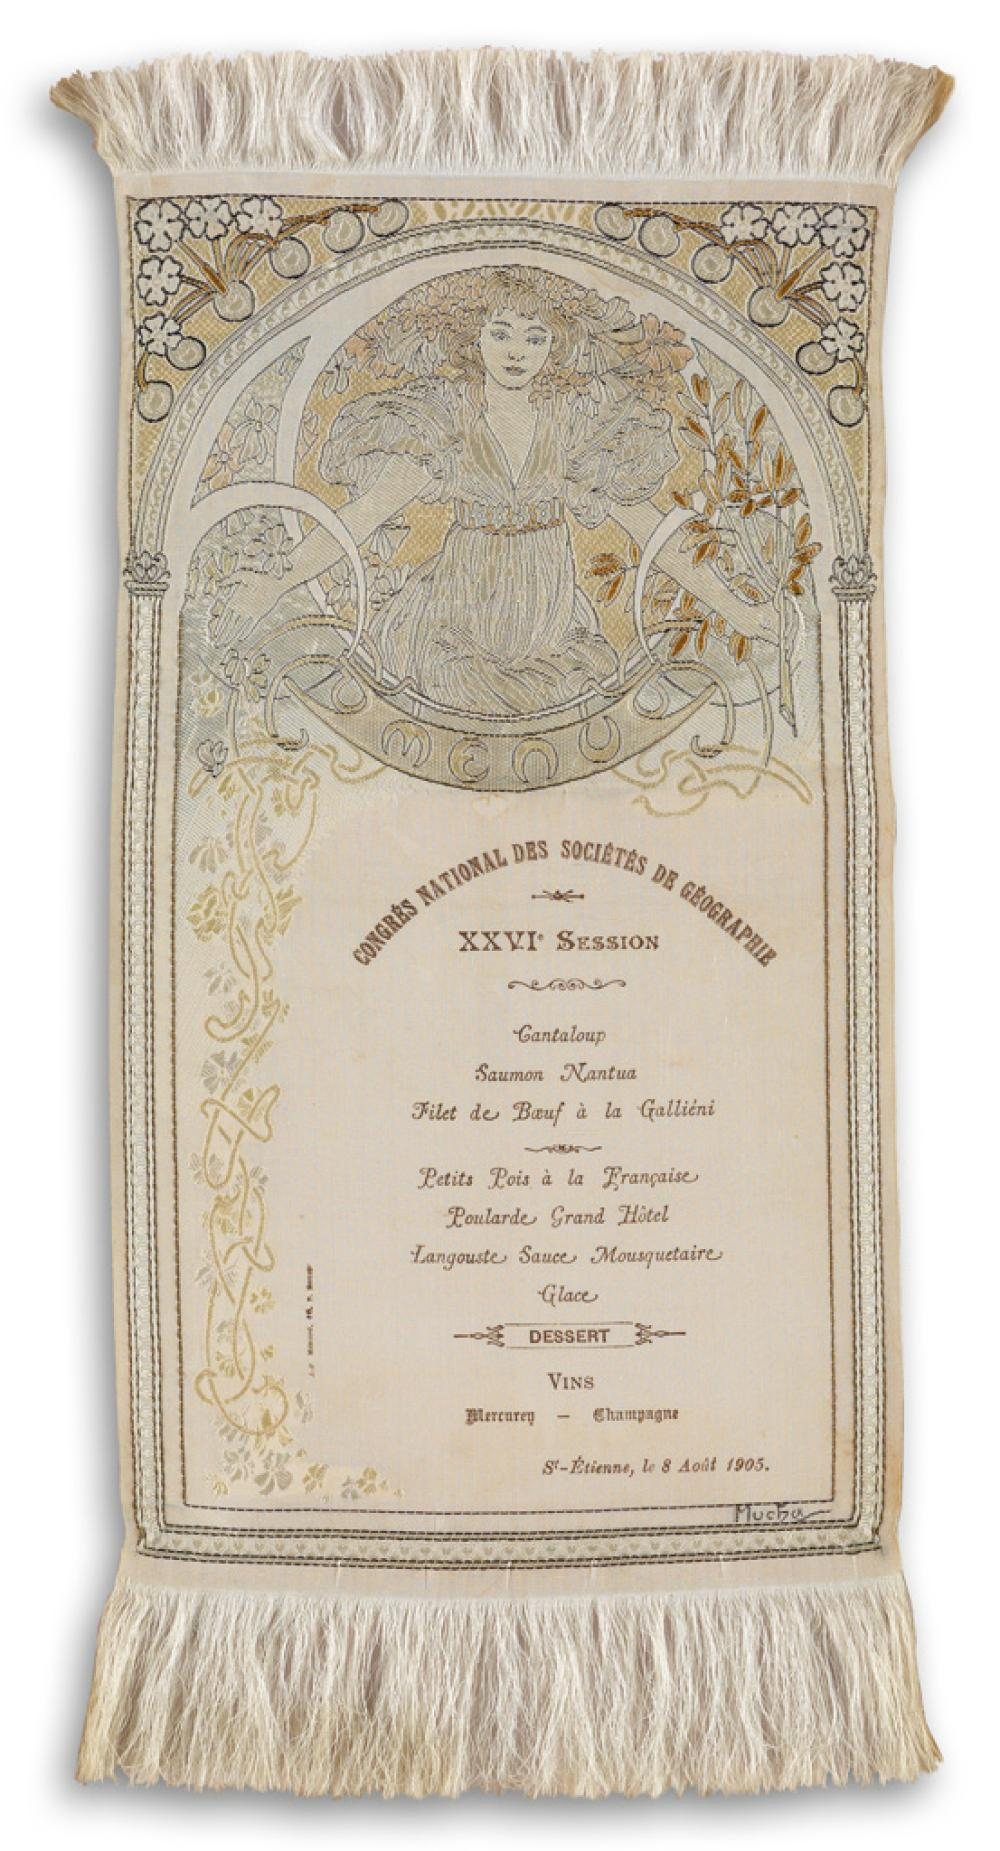 ALPHONSE MUCHA (1860-1939). CONGRÉS NATIONAL DES SOCIÉTÉS DE GÉOGRAPHIE. Menu printed on embroidered silk. 1905. 11x5 inches, 29x13 cm.